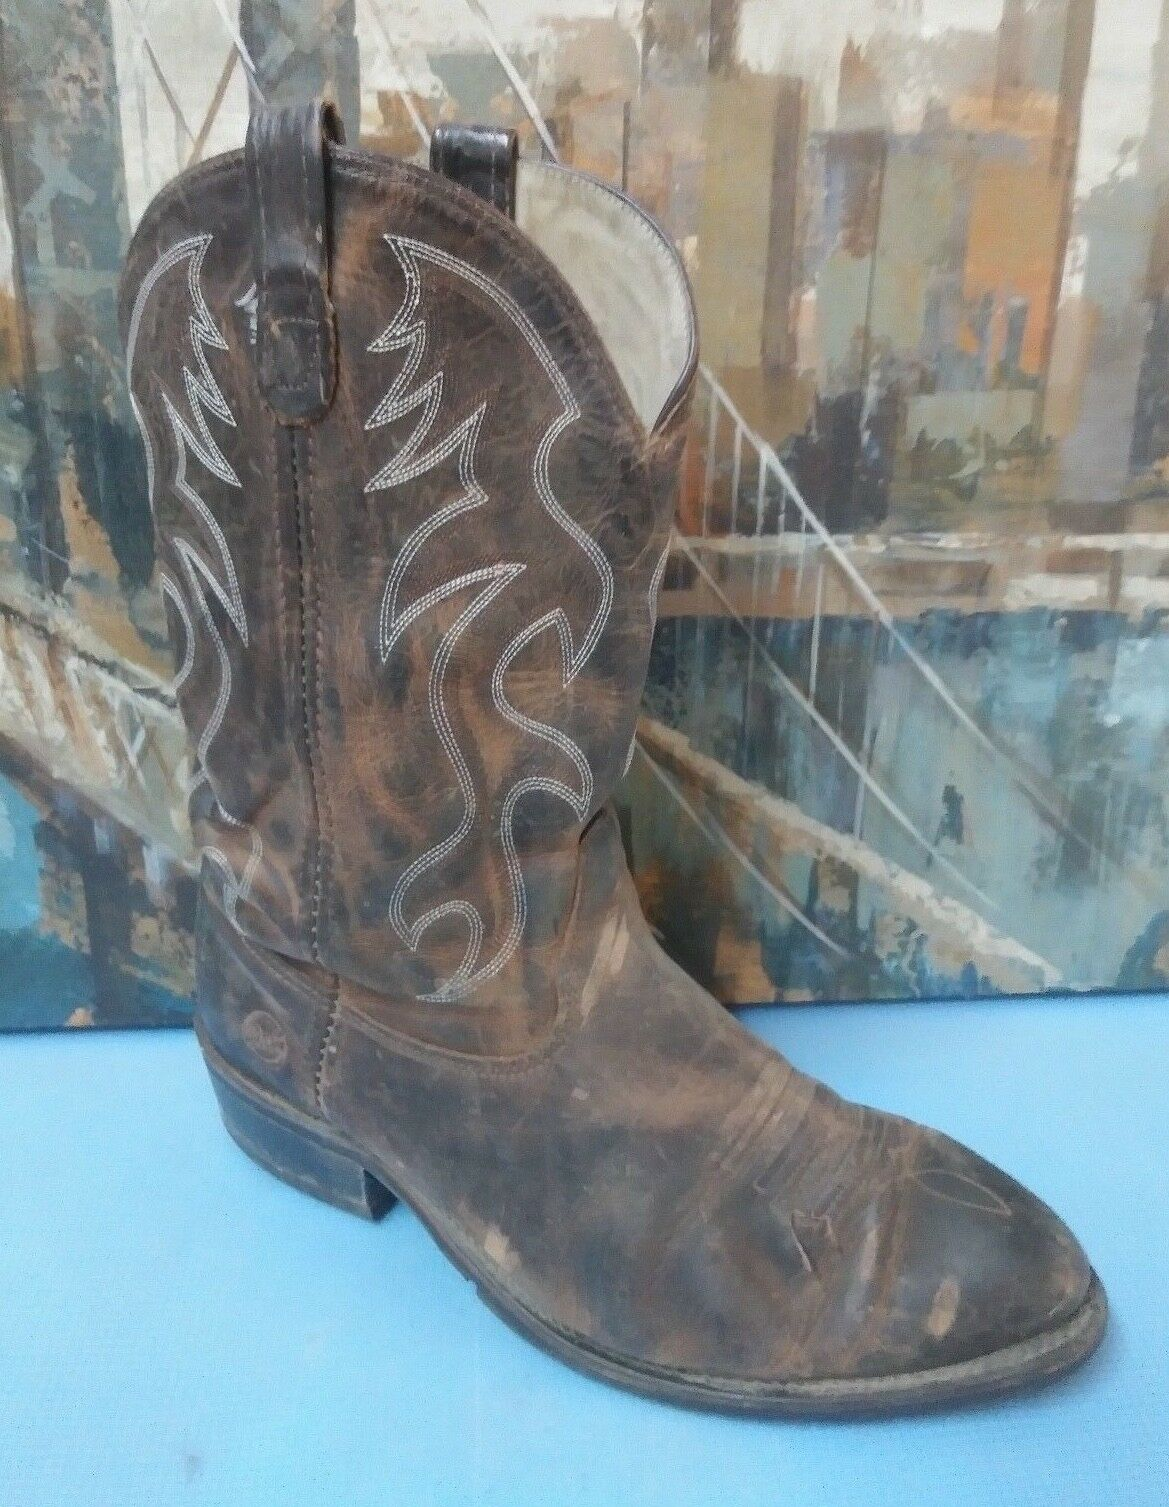 Uomo's Cowboy Stivali. Brown Pelle. Double H 3282. Made In USA. 11.5 EEE